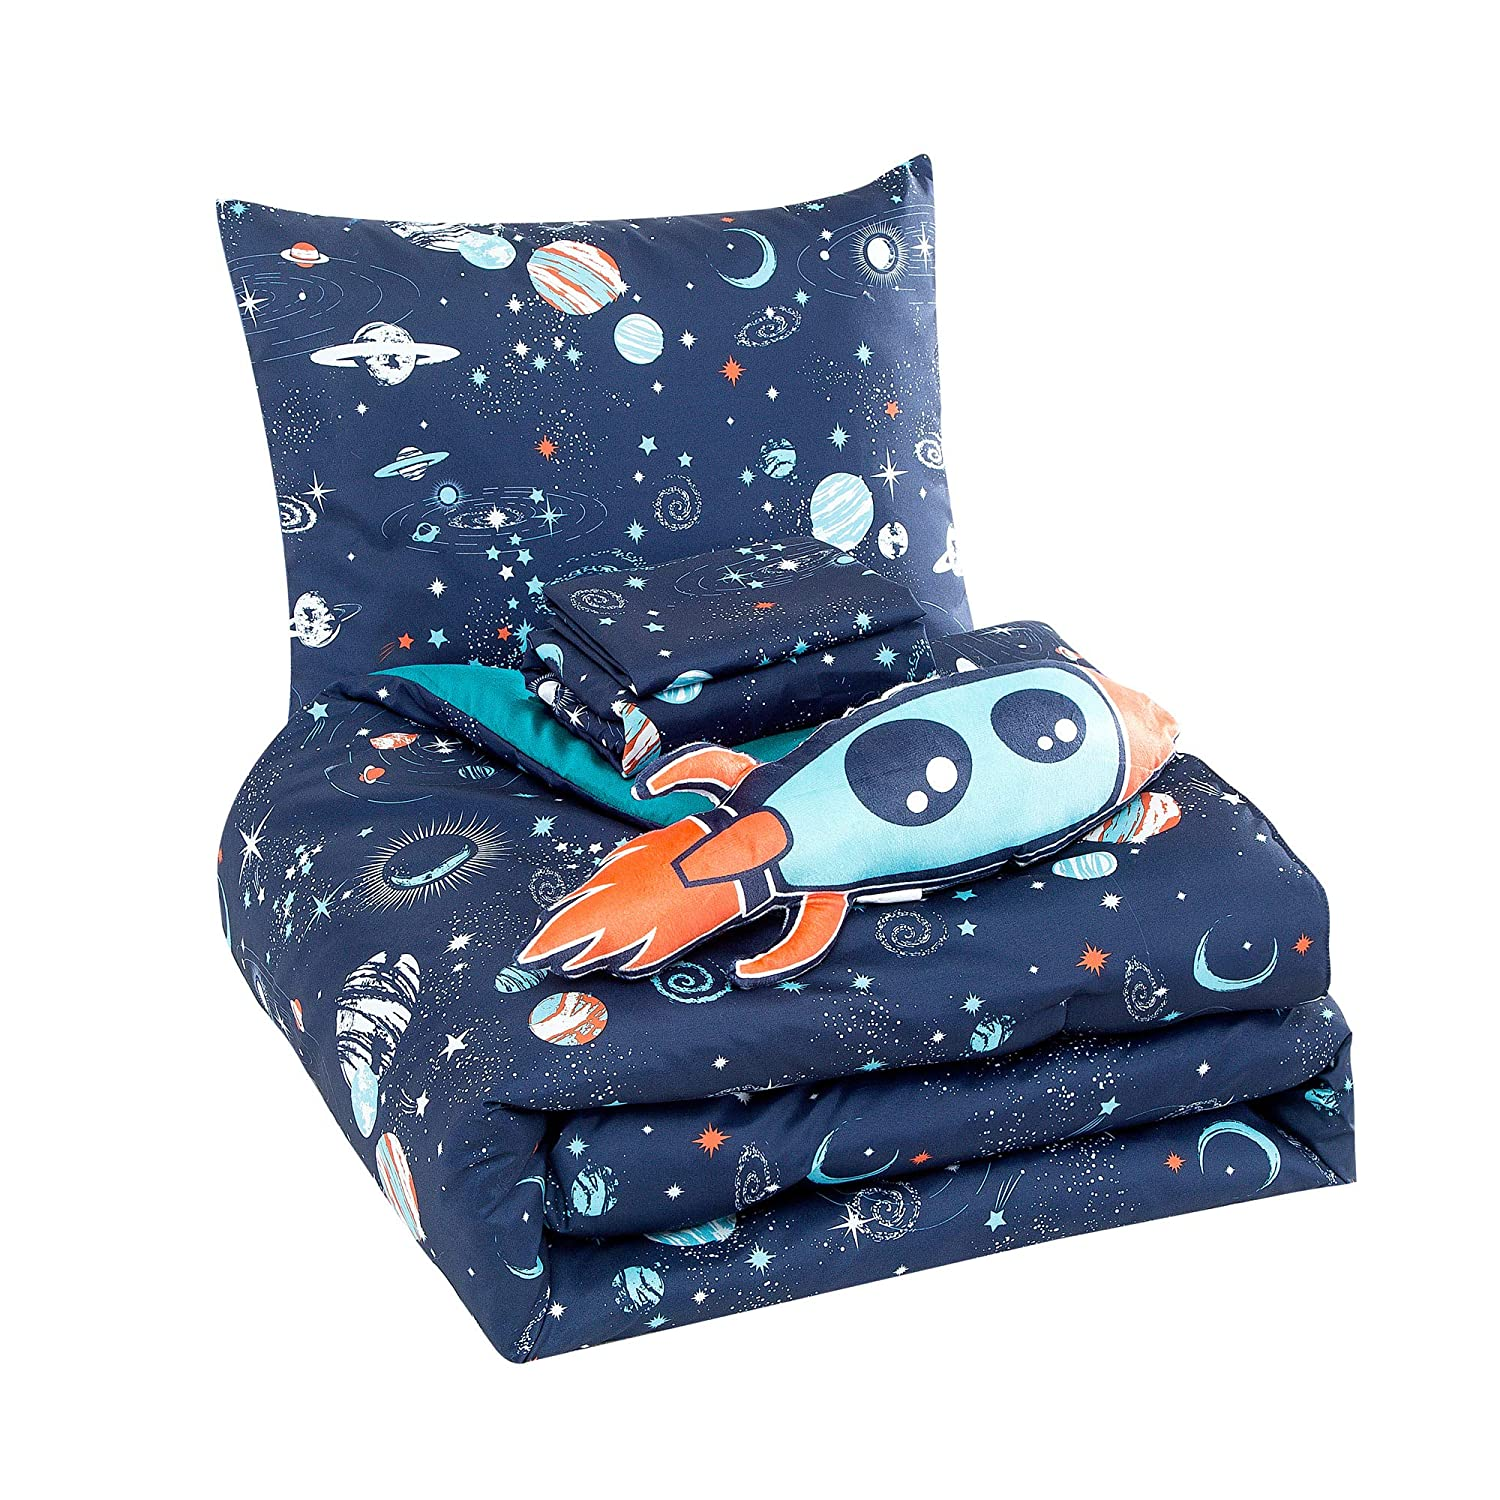 WPM Kids Collection Bedding 5 Piece Blue Space Ship Rocket Print Full Size Comforter Set with Sheet Pillow sham and Rocket Toy Fun Stars Planets Design (Pandora, Full Comforter)